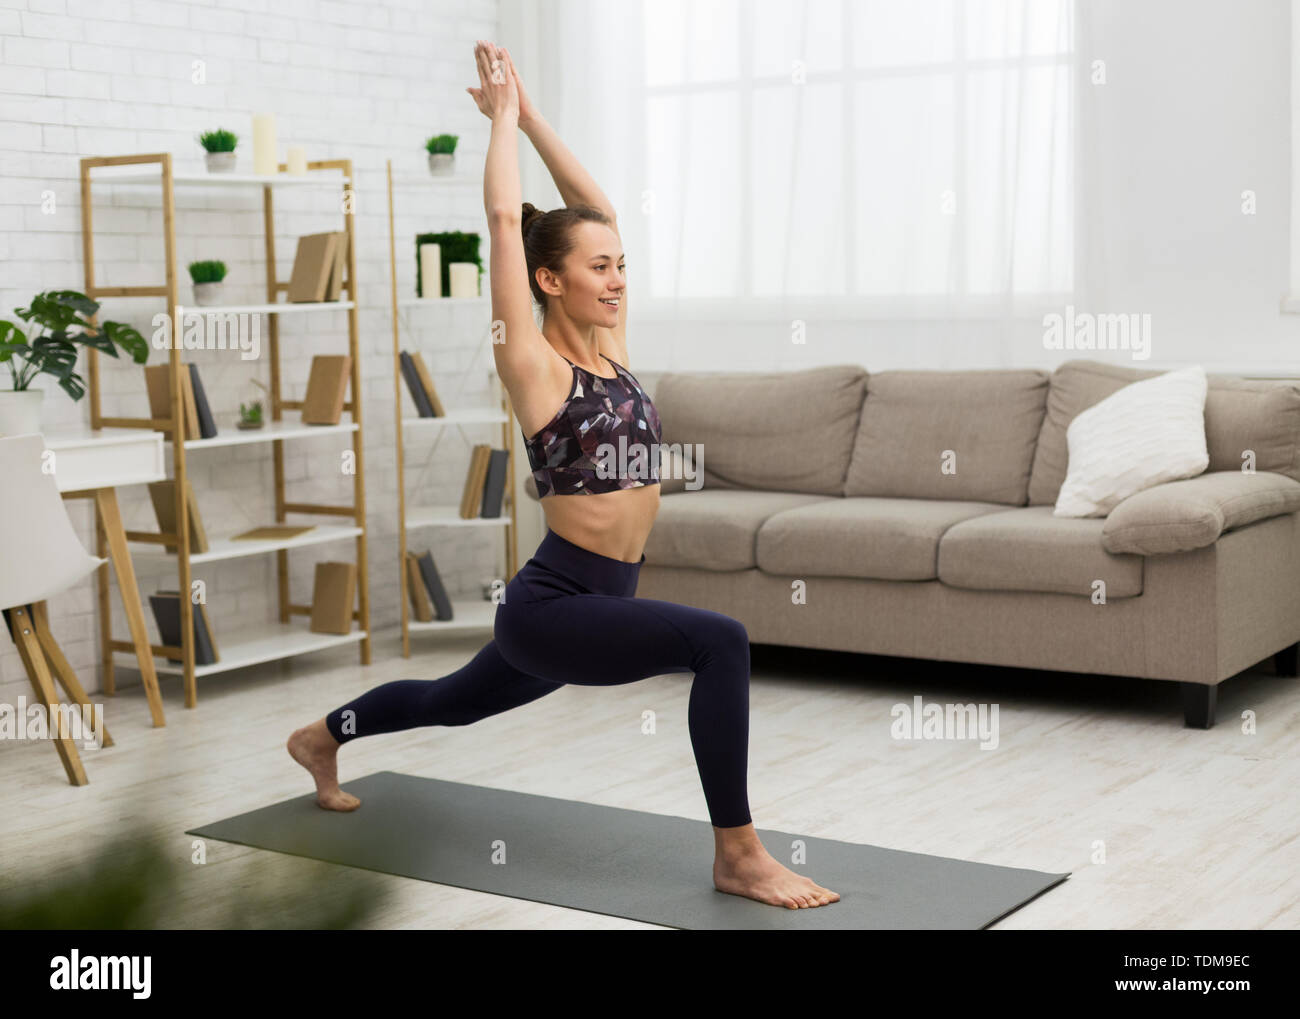 Sporty Woman Practicing Yoga, Doing Stretching Exercise - Stock Image